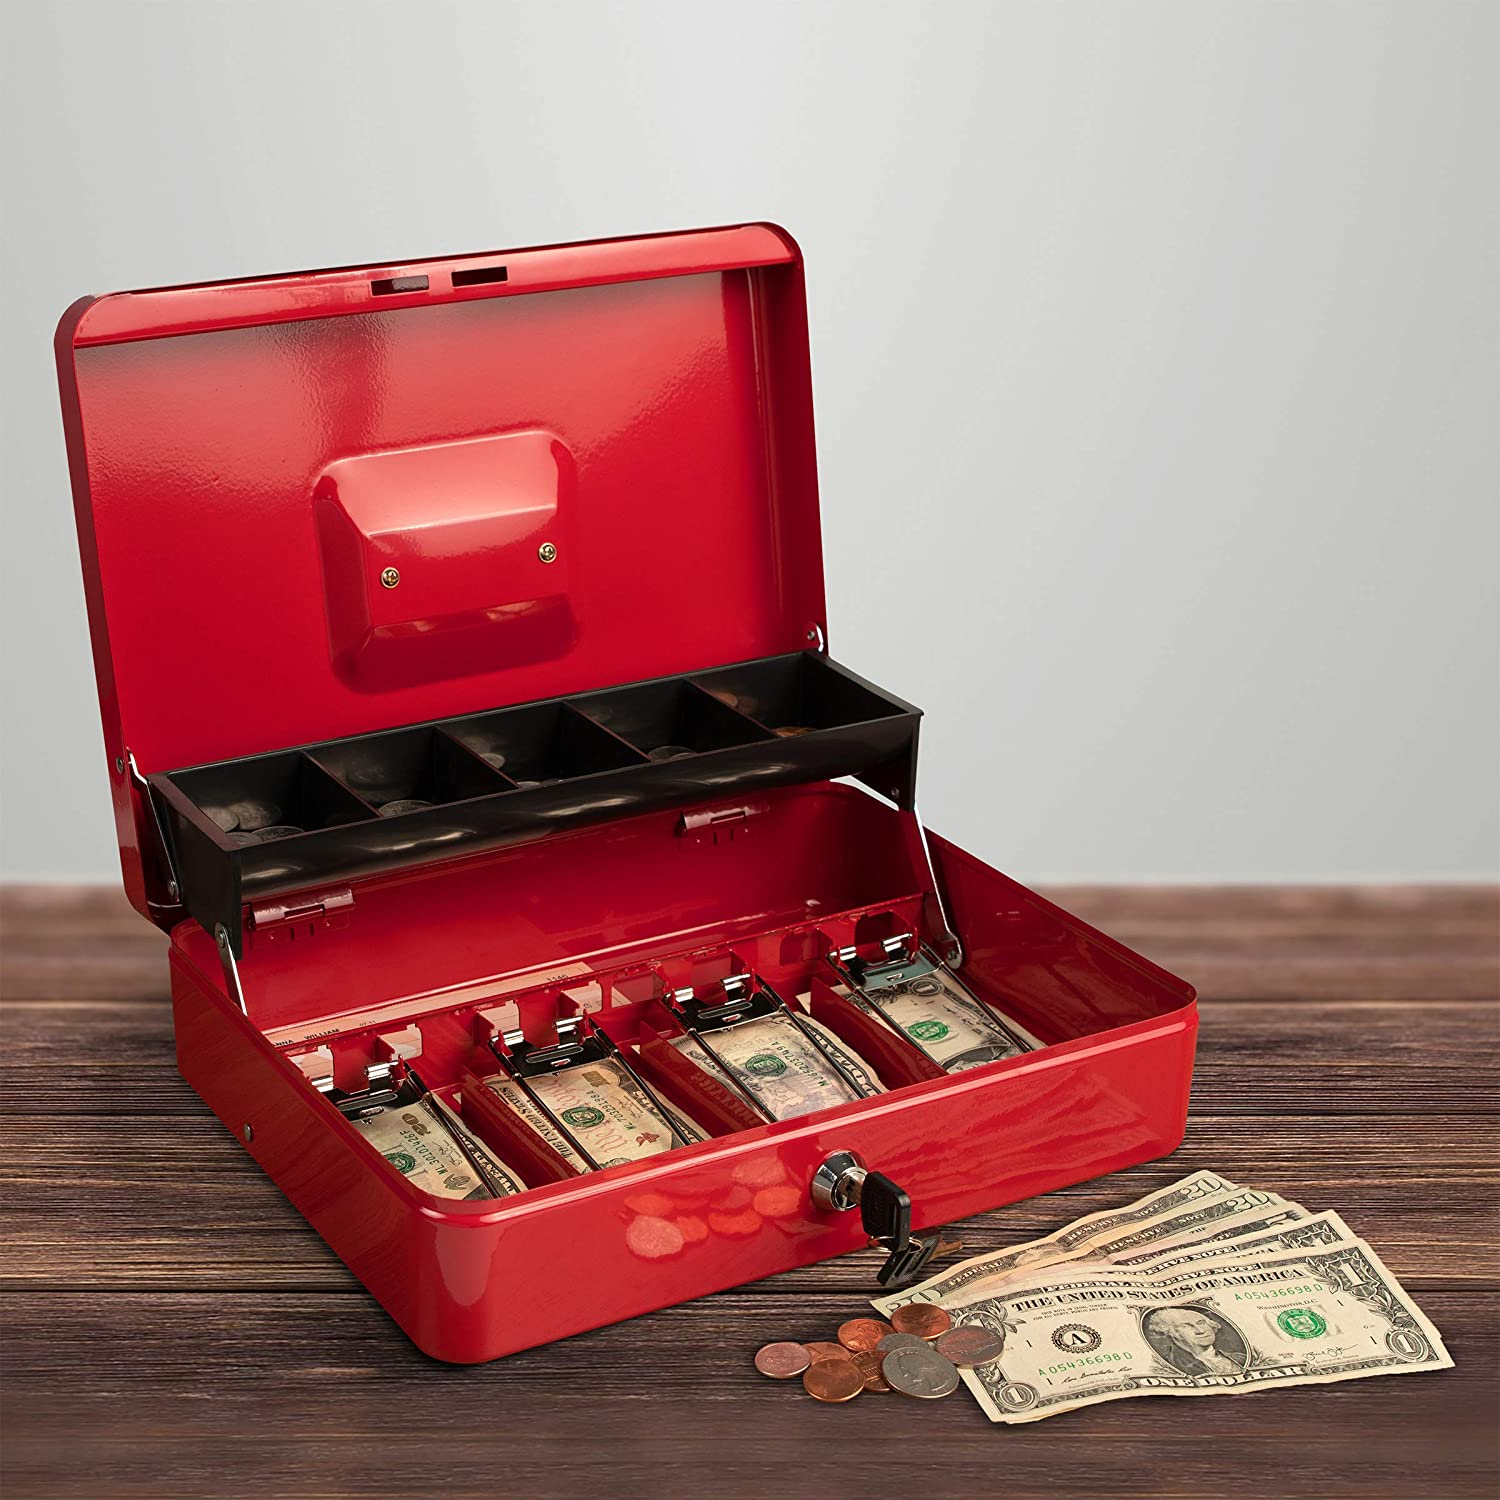 Red M Portable Sturdy Metal Money Box Cash Box with Coin Tray Petty Cash